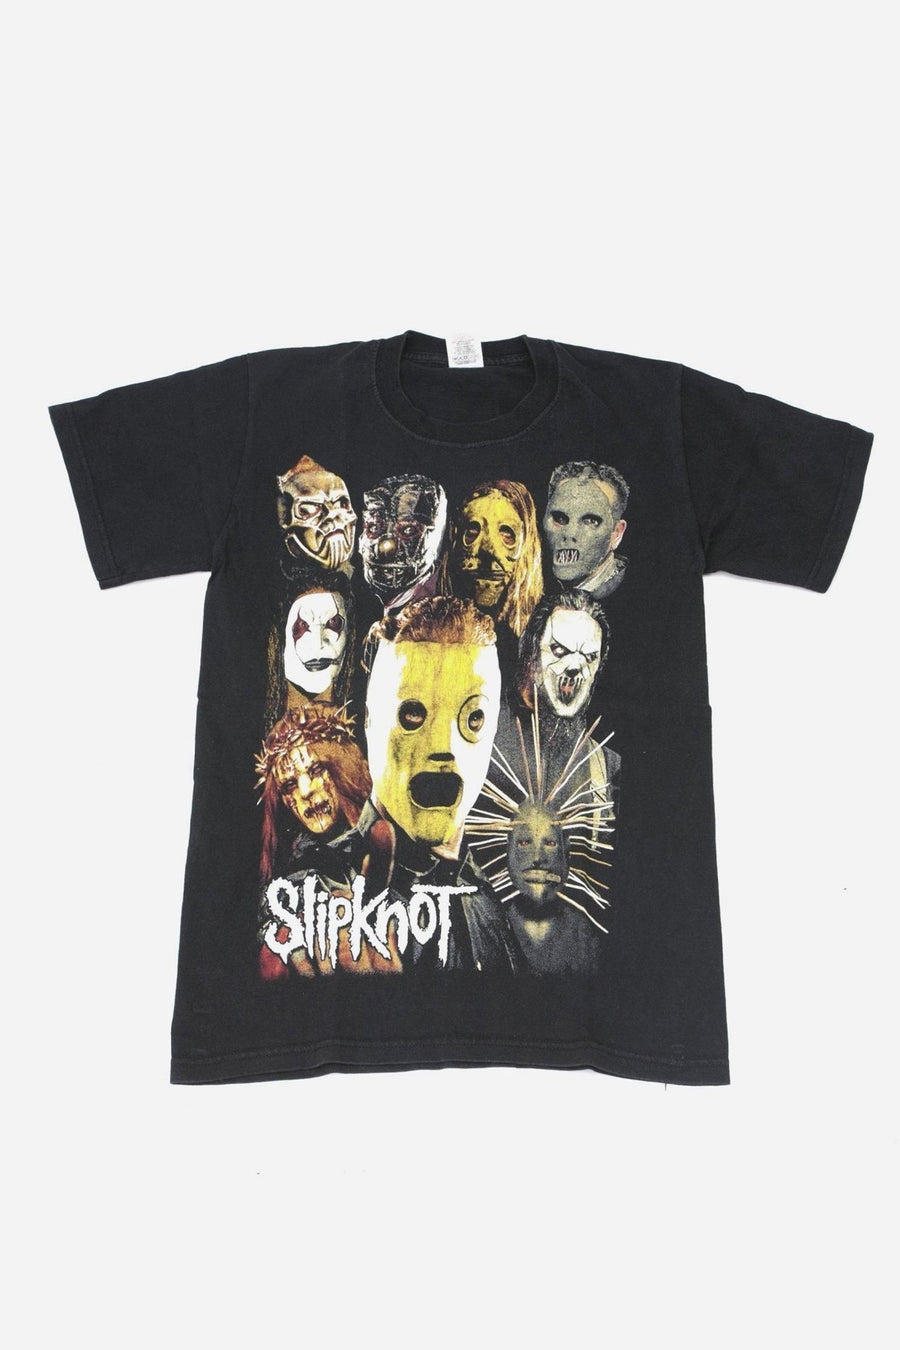 T-Shirt Slipknot Full Mask - WASTED PARIS